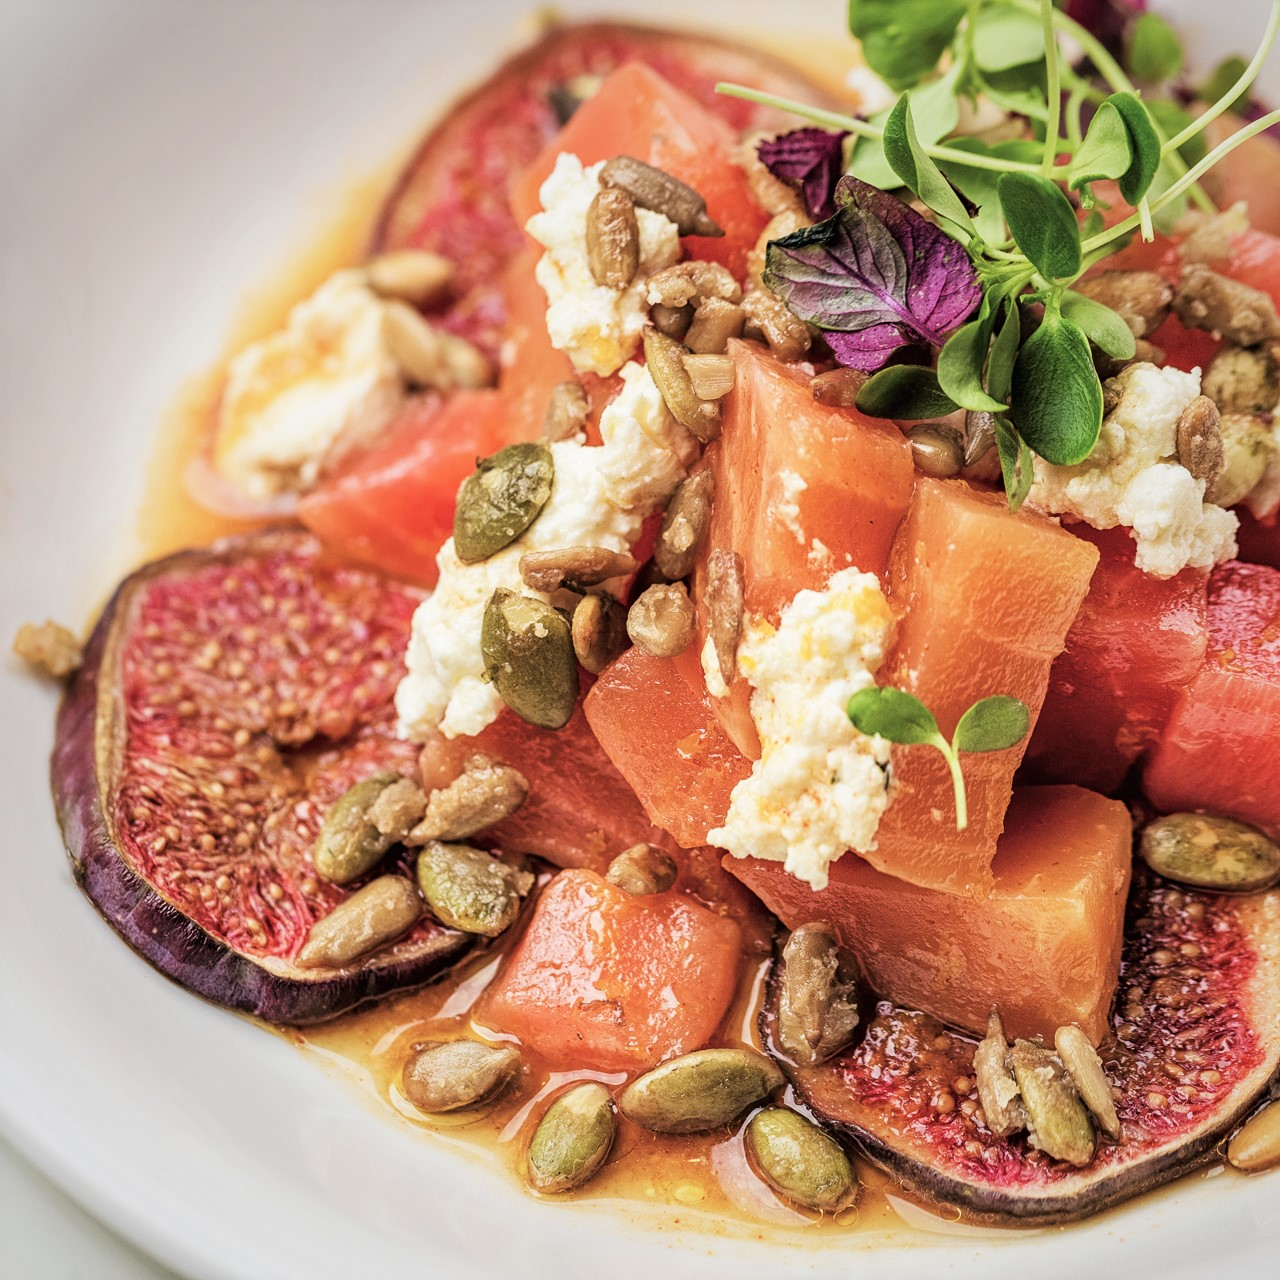 Heritage Beetroot, Persian Feta, Figs & Candied Seeds Bistrot Bagatelle Dubai - Eating the Rainbow